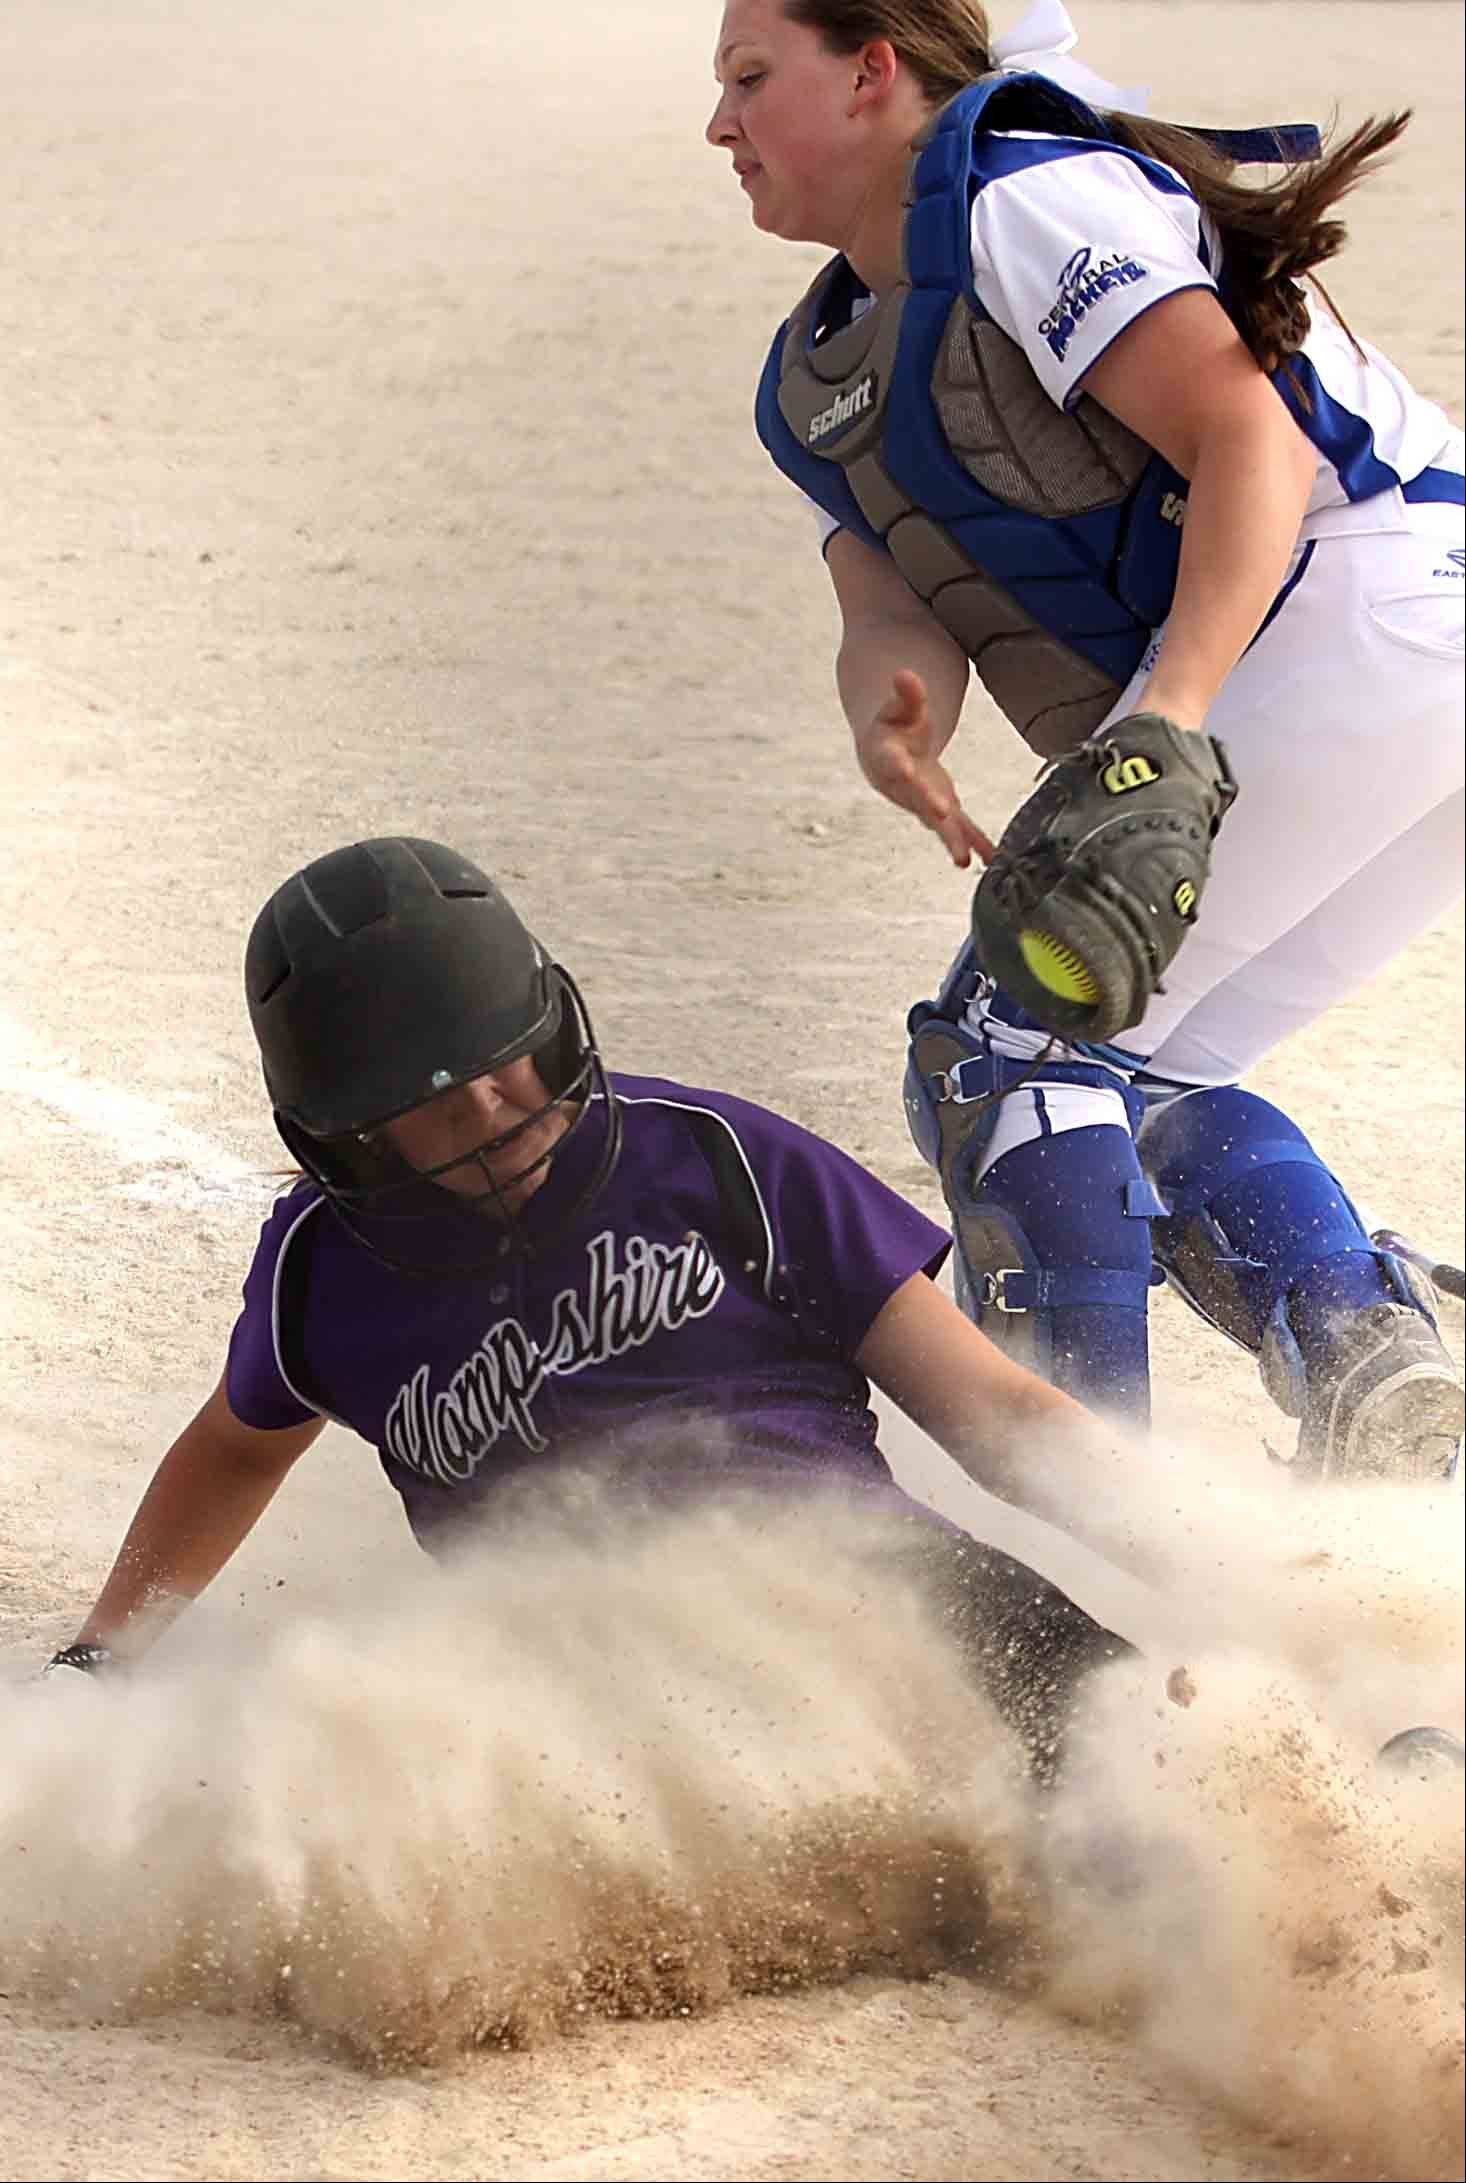 Burlington Central catcher Bekah Harnish fields the throw as Hampshire's Alyssa Snider slides safely into home Wednesday at Burlington.